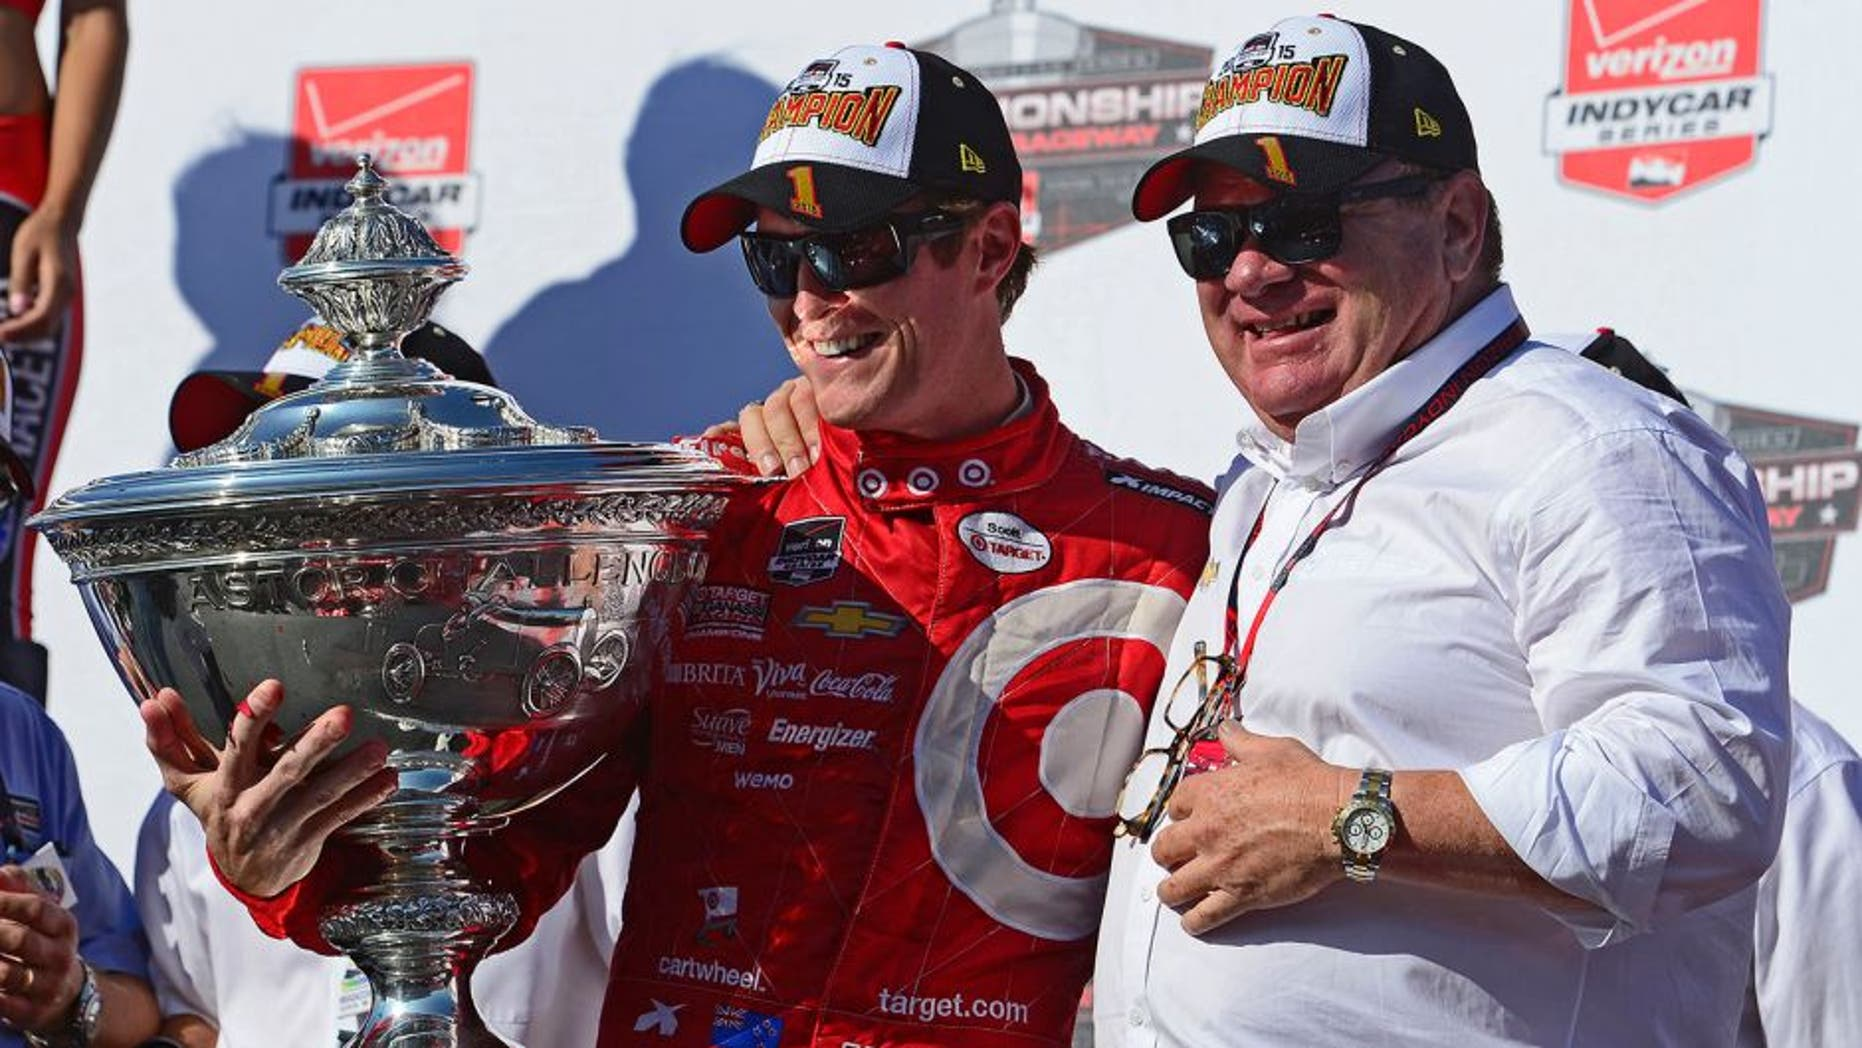 SONOMA, CA - AUGUST 30: Scott Dixon of New Zealand driver of the #9 Target Chip Ganassi Racing Chevrolet Dallara and team owner Chip Ganassi pose with the Championship Trophy presentation stage after winning the Verizon IndyCar Series GoPro Grand Prix of Sonoma at Sonoma Raceway on August 30, 2015 in Sonoma, California. (Photo by Robert Laberge/Getty Images)